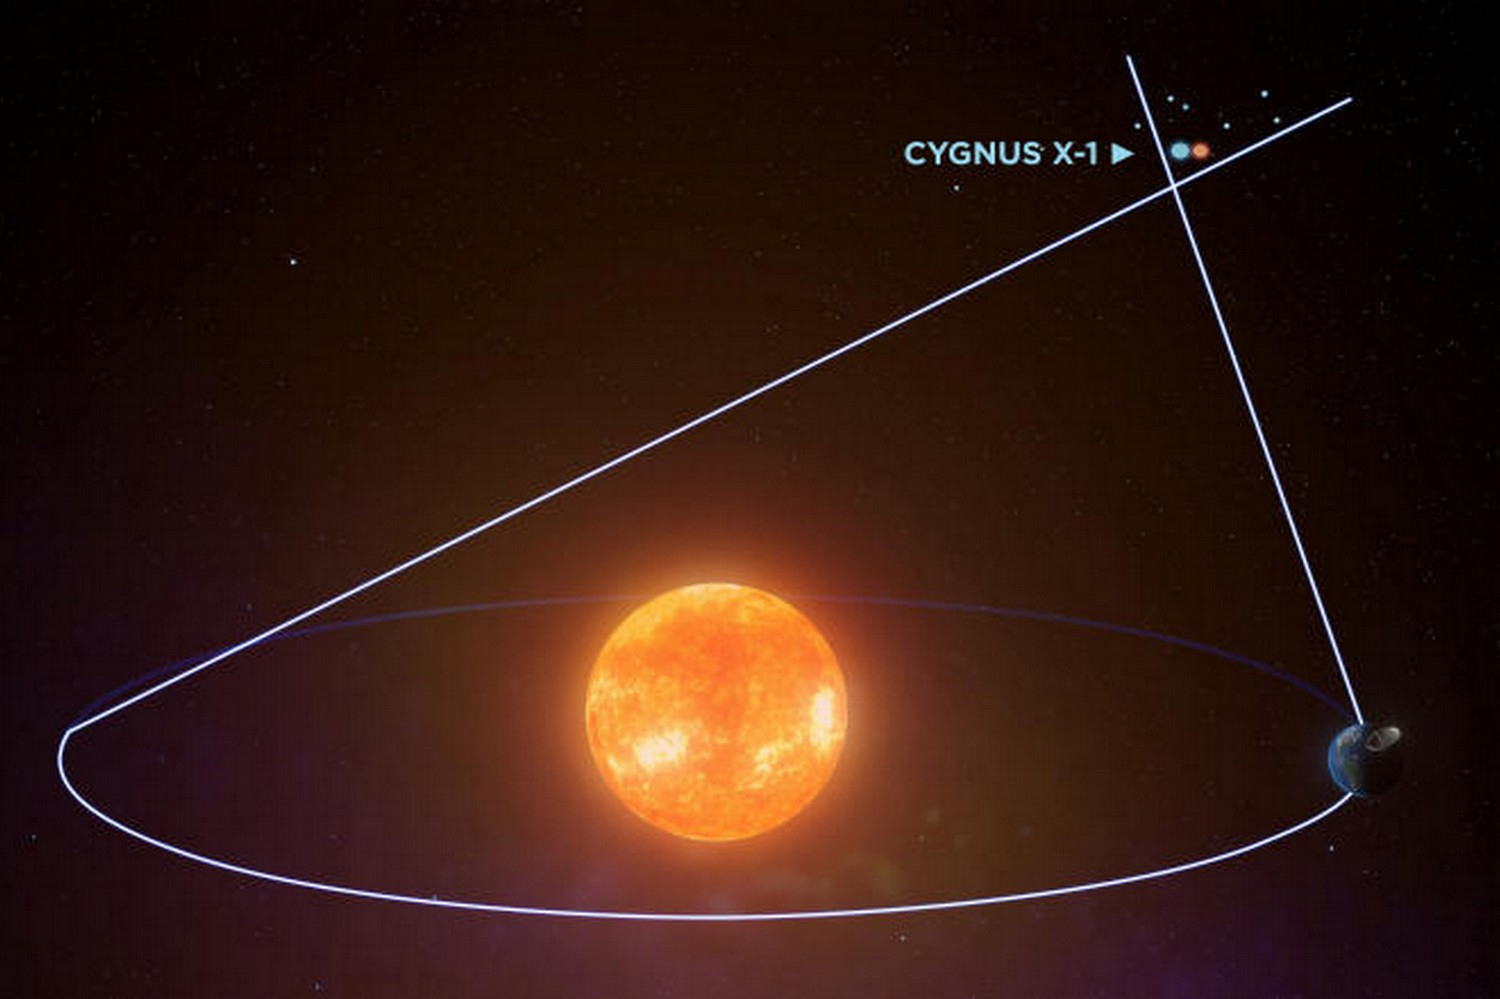 An illustration of how astronomers observed the Cygnus X-1 system from different angles, using the EarthÕs orbit around the sun to measure the perceived movement of the system against the background stars. (International Centre for Radio Astronomy Research via The New York Times)